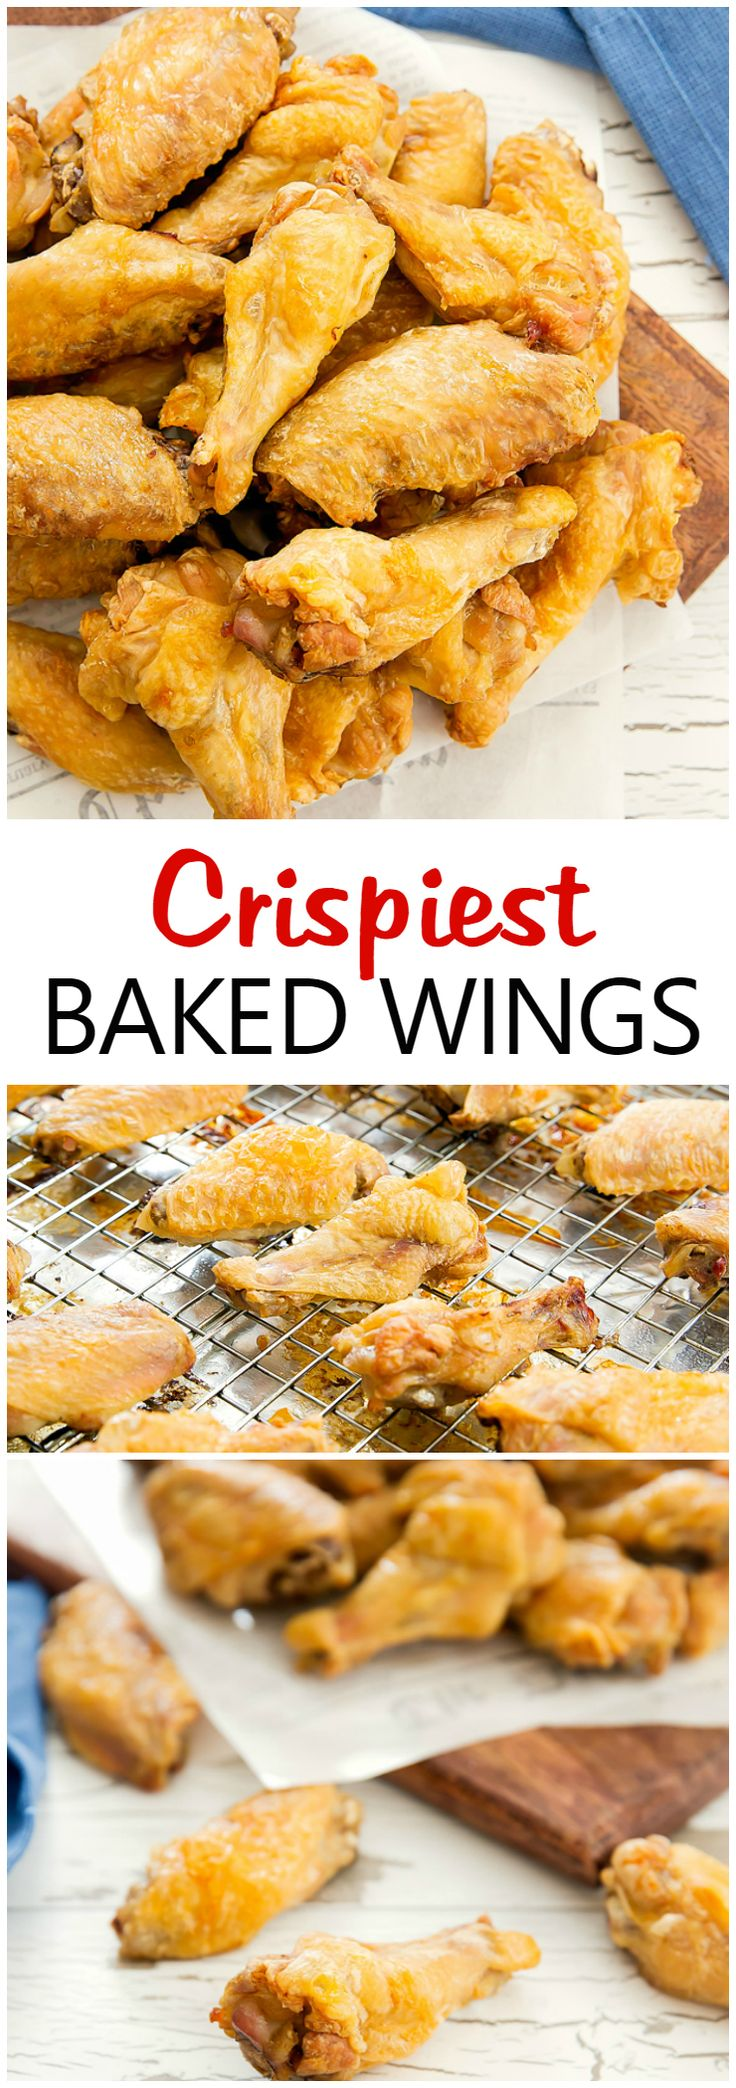 Crispiest Baked Chicken Wings. With one little extra ingredient, these wings come out golden brown with super crispy skin!